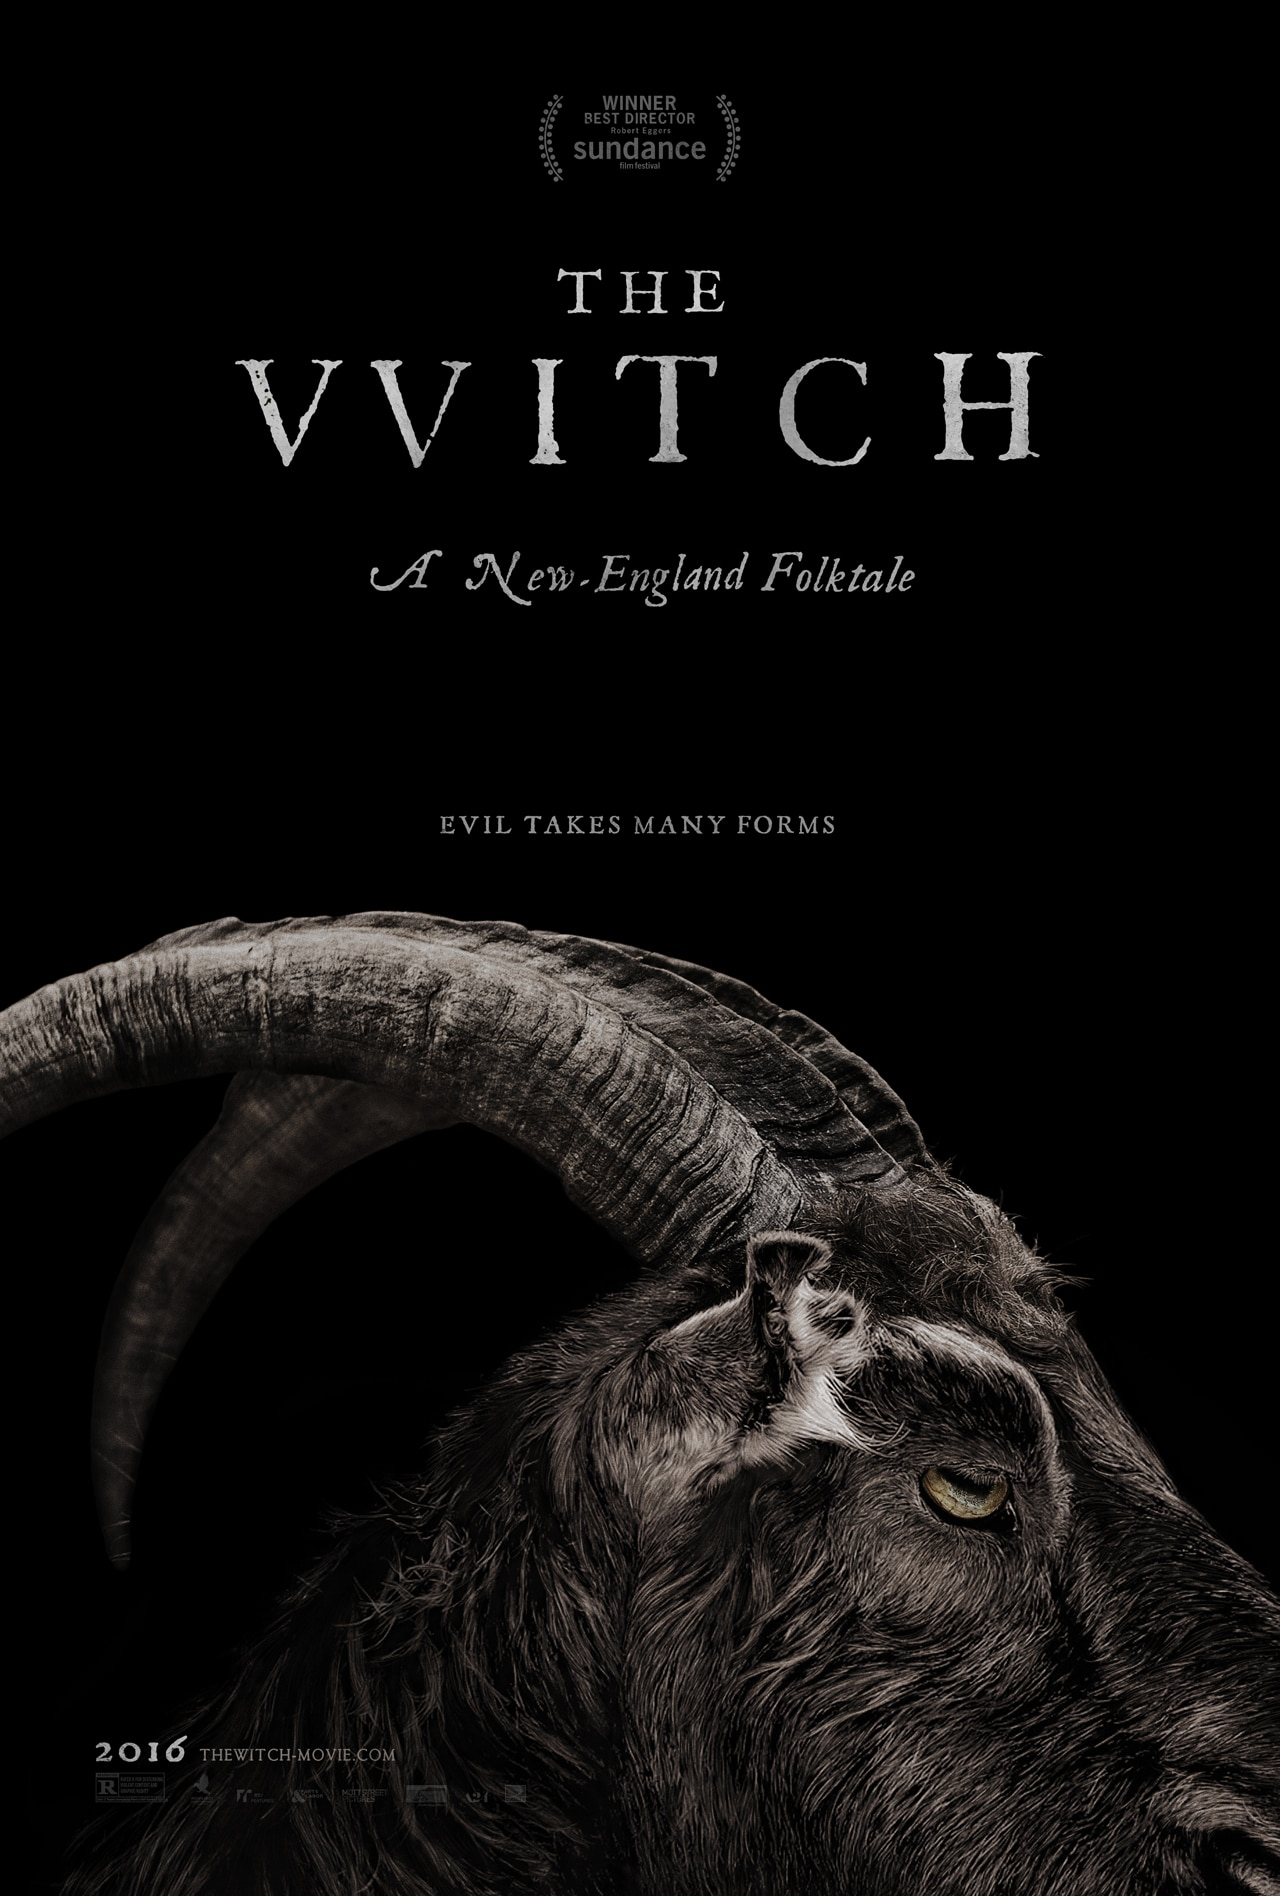 thewitch online teaser 01 web large - Dread Central's Best and Worst Horror Films of 2016